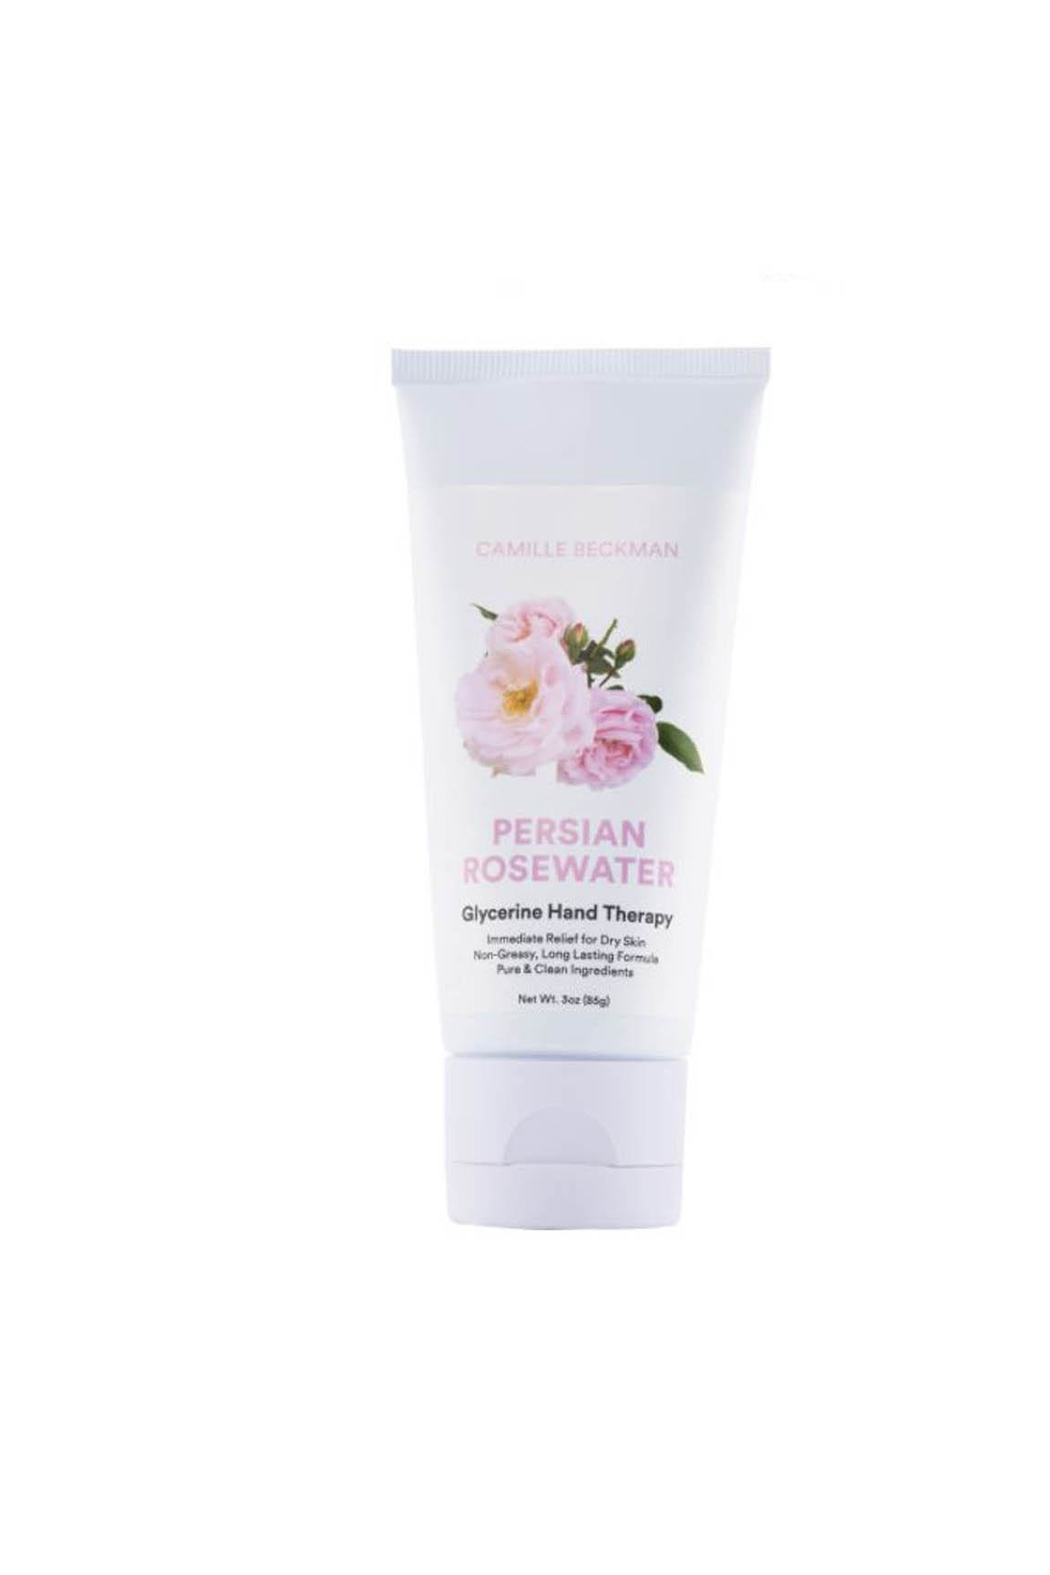 Camille Beckman Rosewater-Glycerine Hand Therapy - Main Image